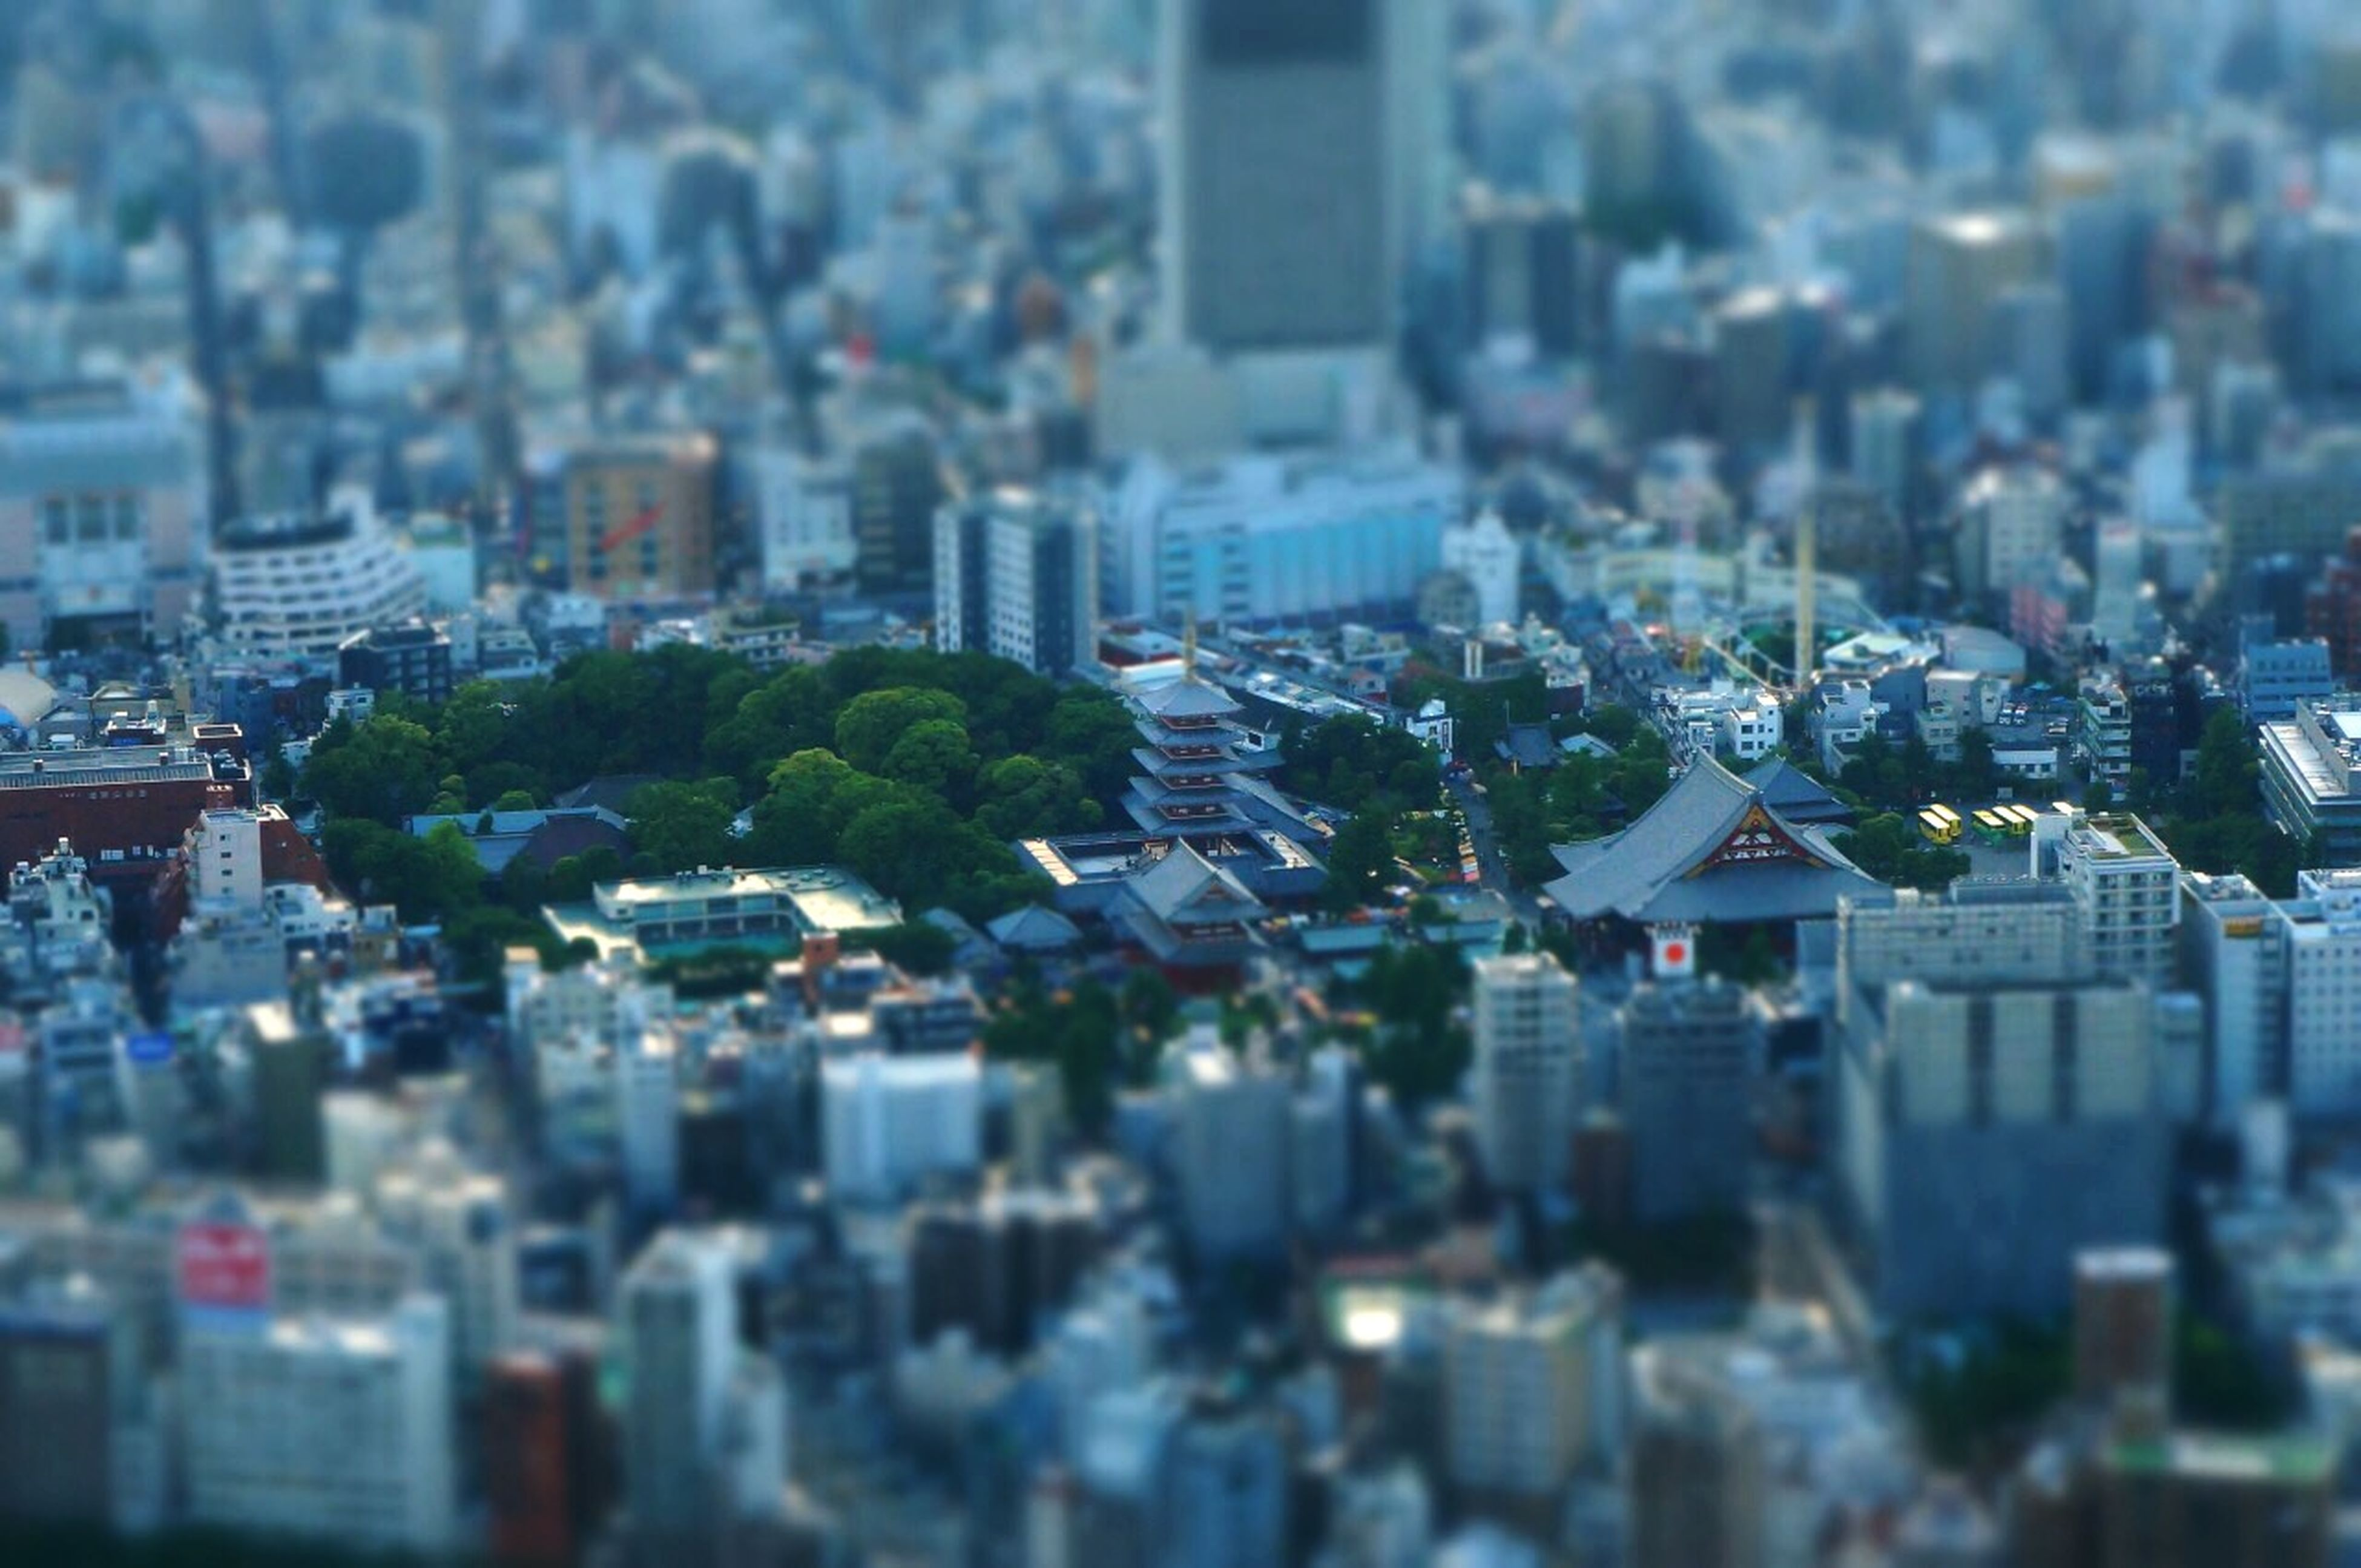 building exterior, architecture, cityscape, city, built structure, crowded, residential district, high angle view, residential building, residential structure, selective focus, city life, focus on foreground, water, aerial view, skyscraper, no people, outdoors, day, tower